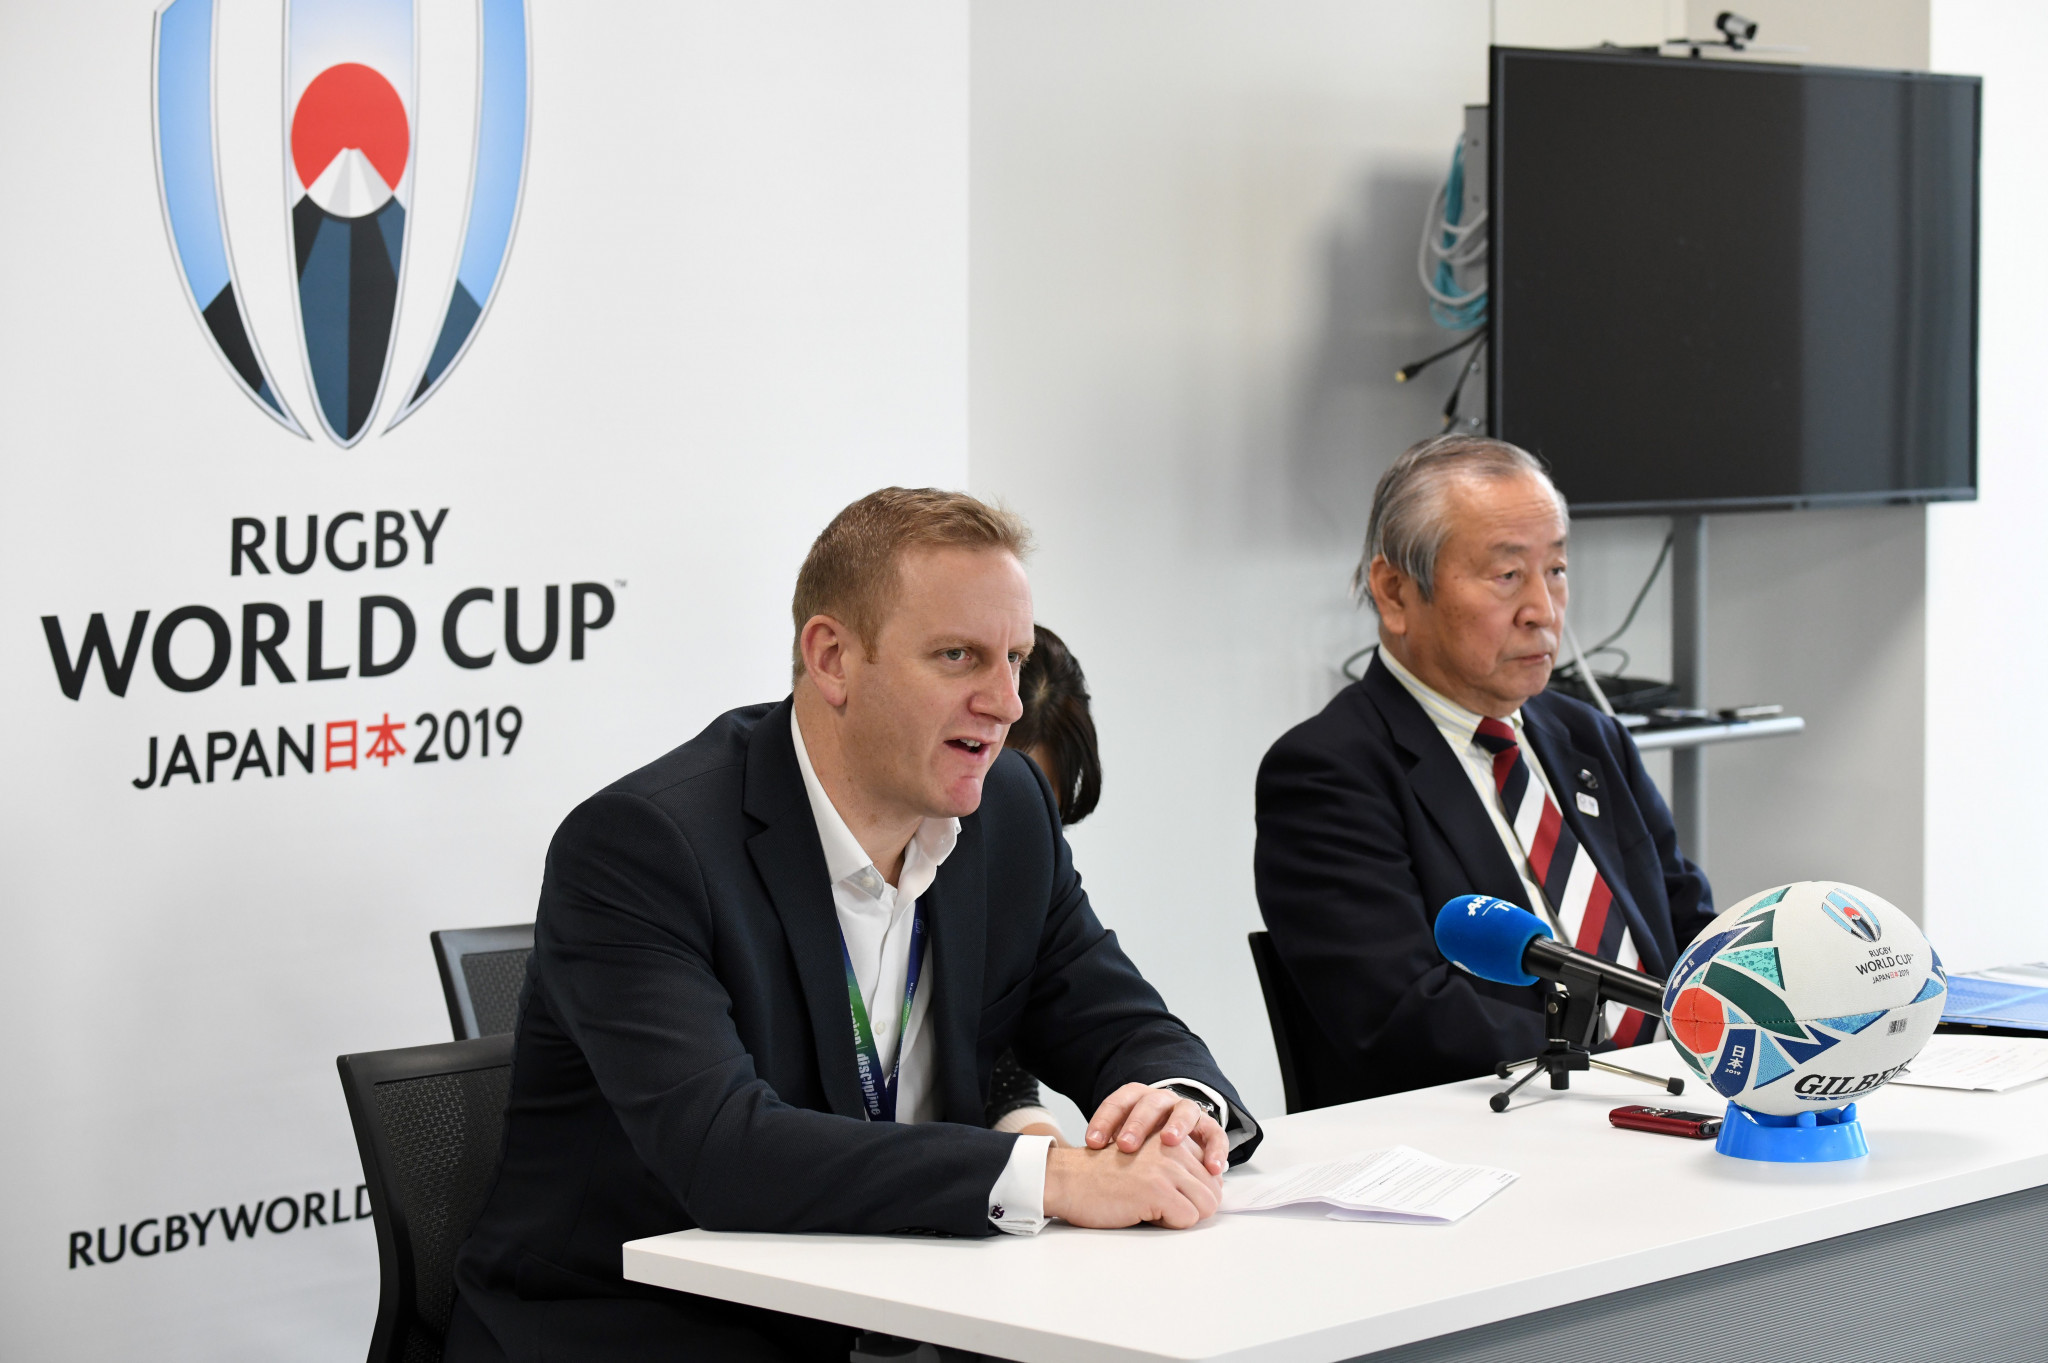 Tournament director Alan Gilpin, left, and Japan Rugby chief executive Akira Shimazu speak following discussions in Tokyo ©Getty Images